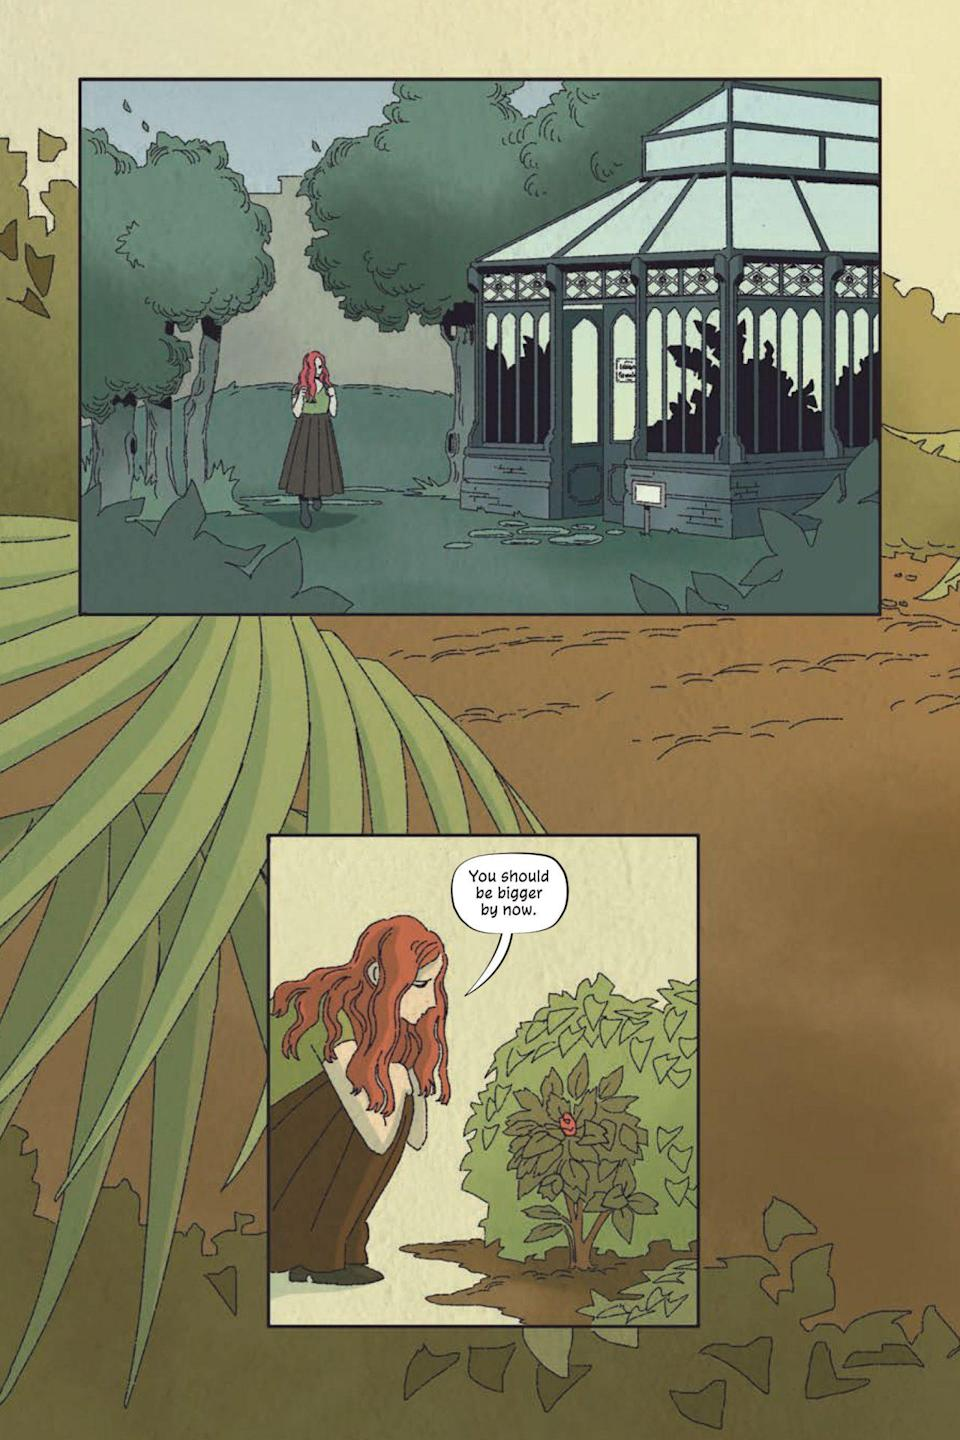 A page from Poison Ivy Thorns shows Ivy in the school garden